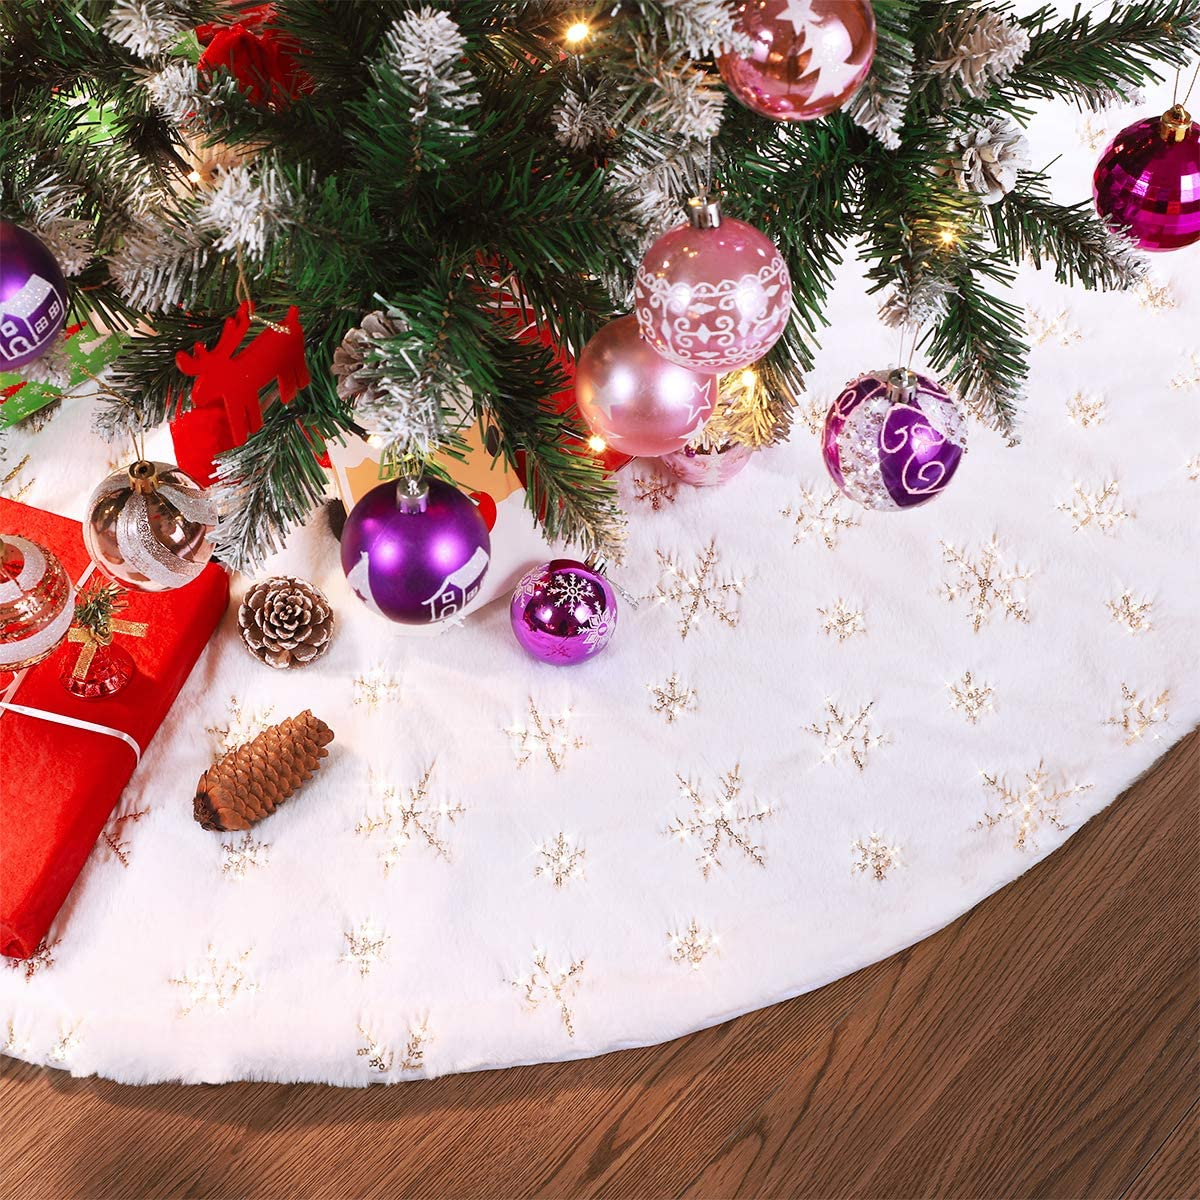 Unomor Christmas Tree Skirt 48 Inches White Faux Fur with Sequins for Merry Christmas Party Christmas Tree Decoration Xmas Party Supplies